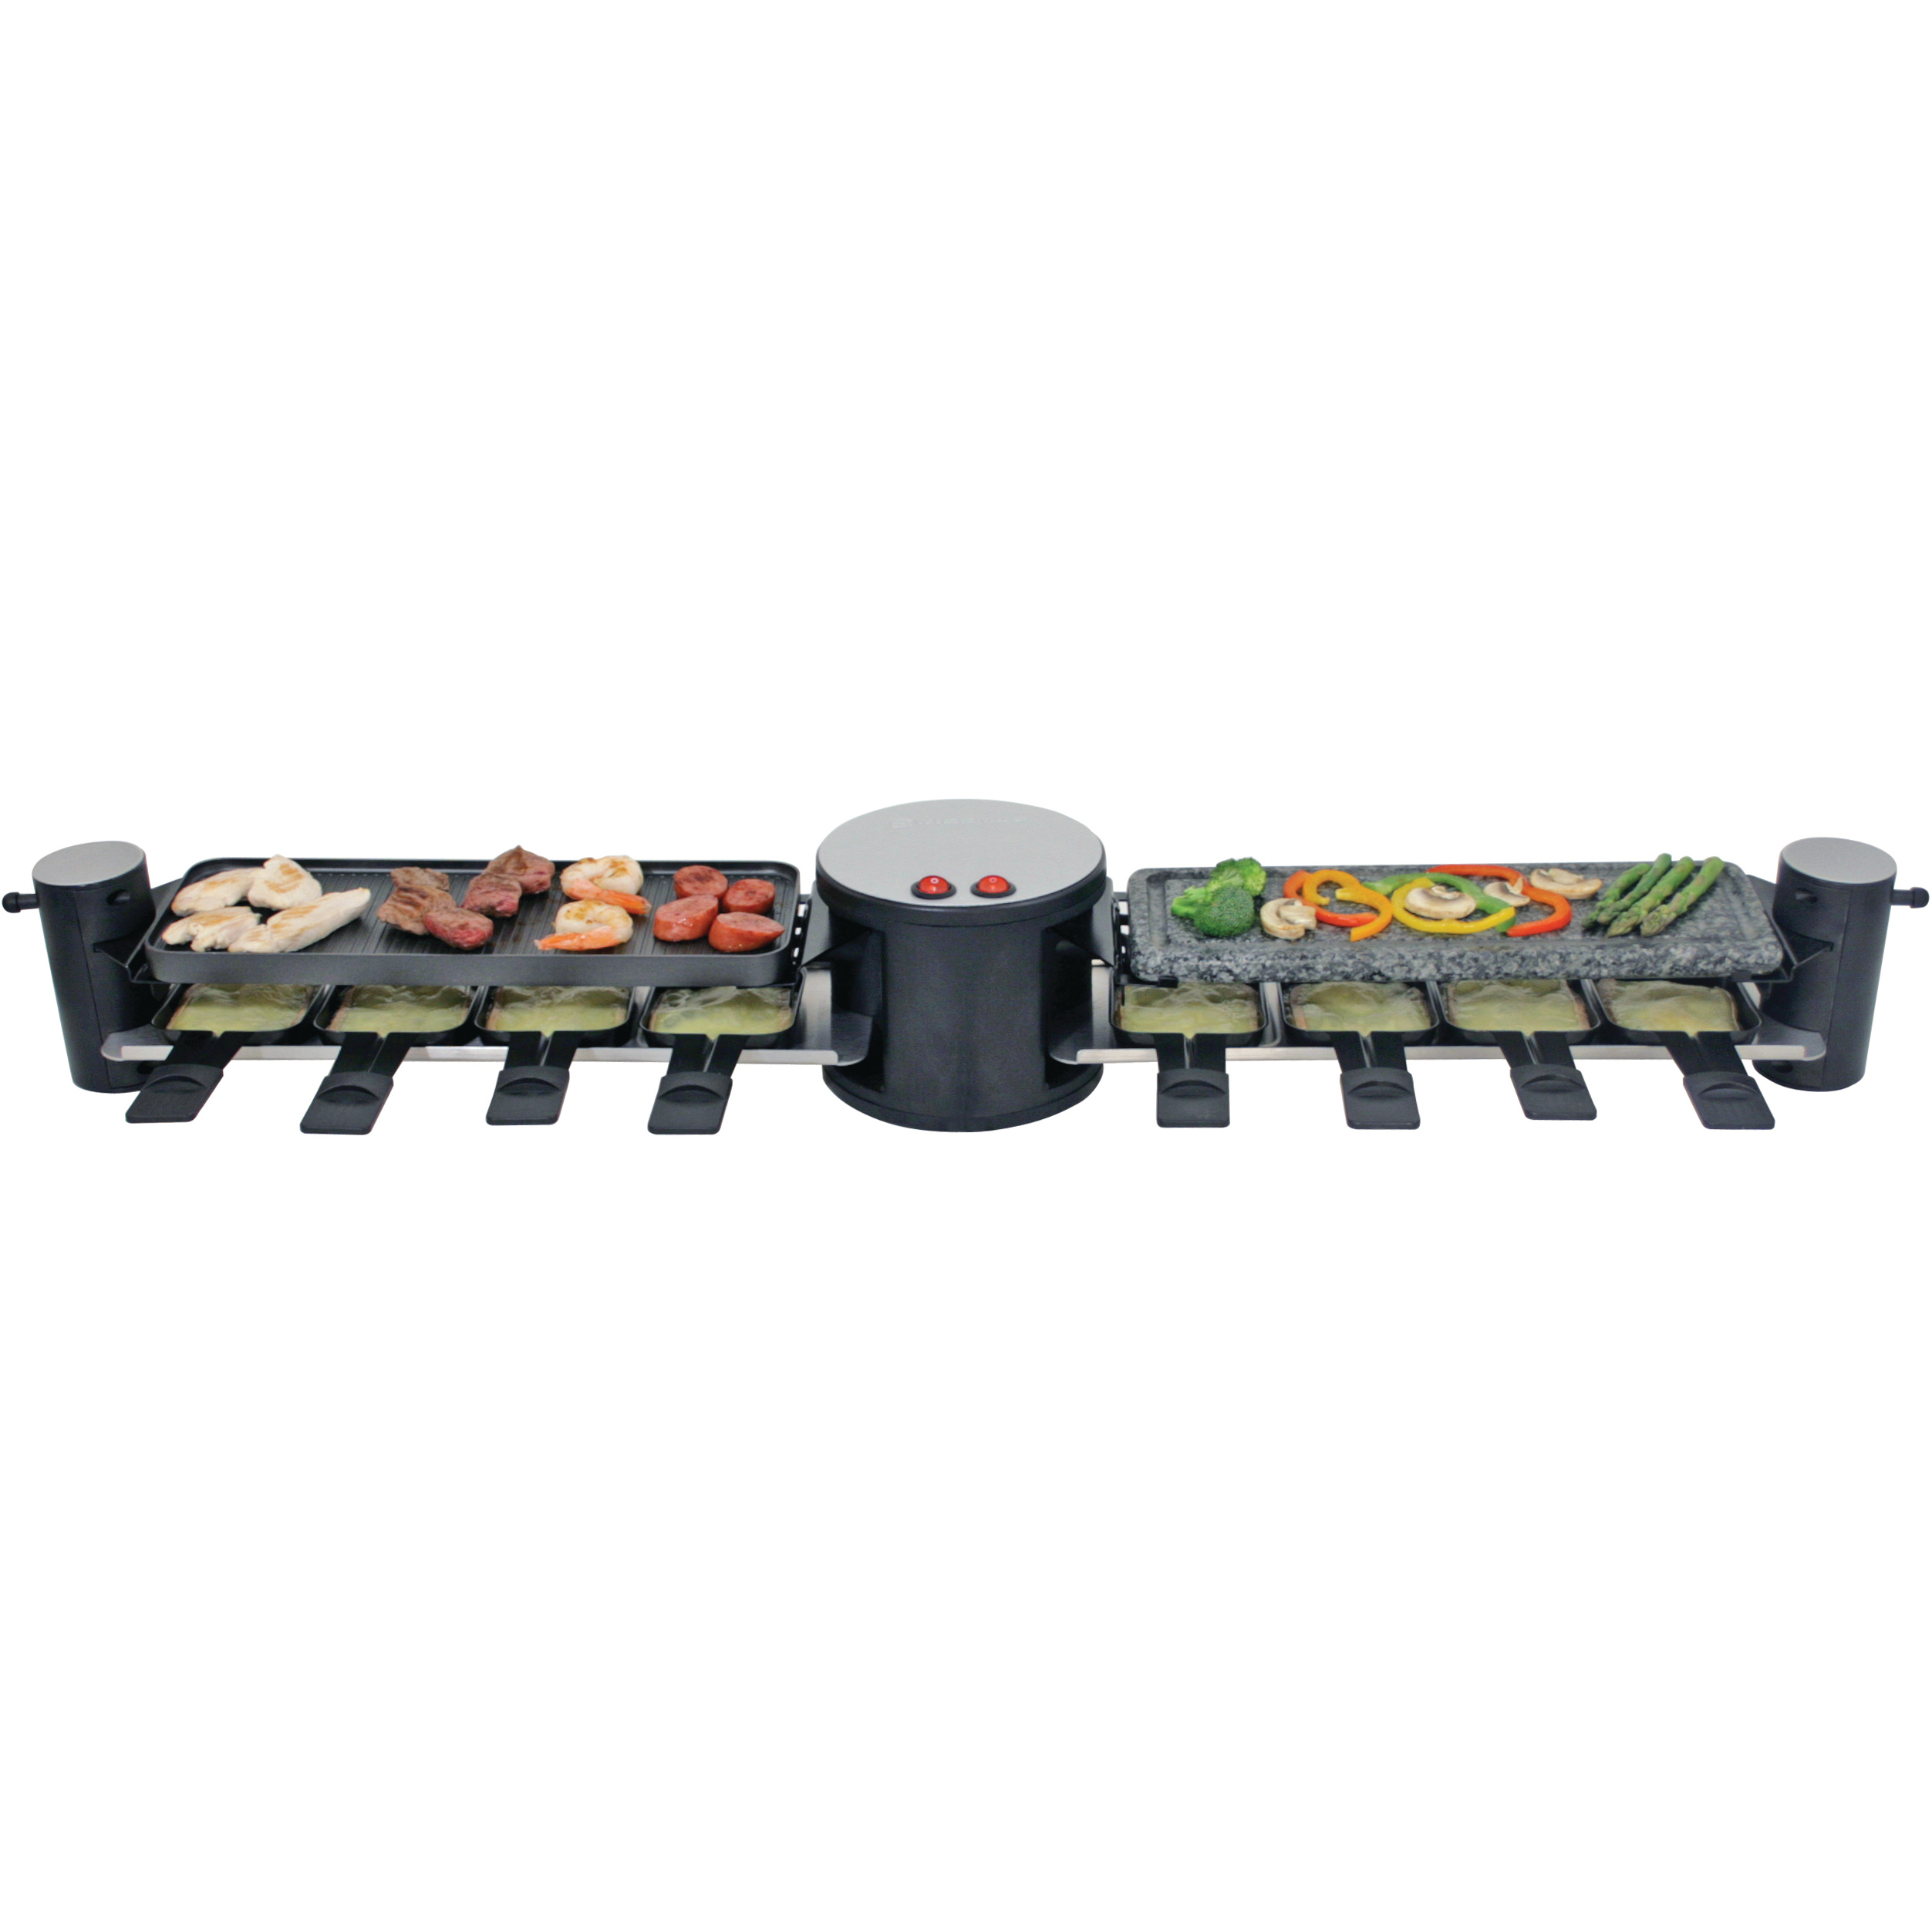 Swissmar Swivel 8 Person Black and Gray Electric Raclette Party Grill